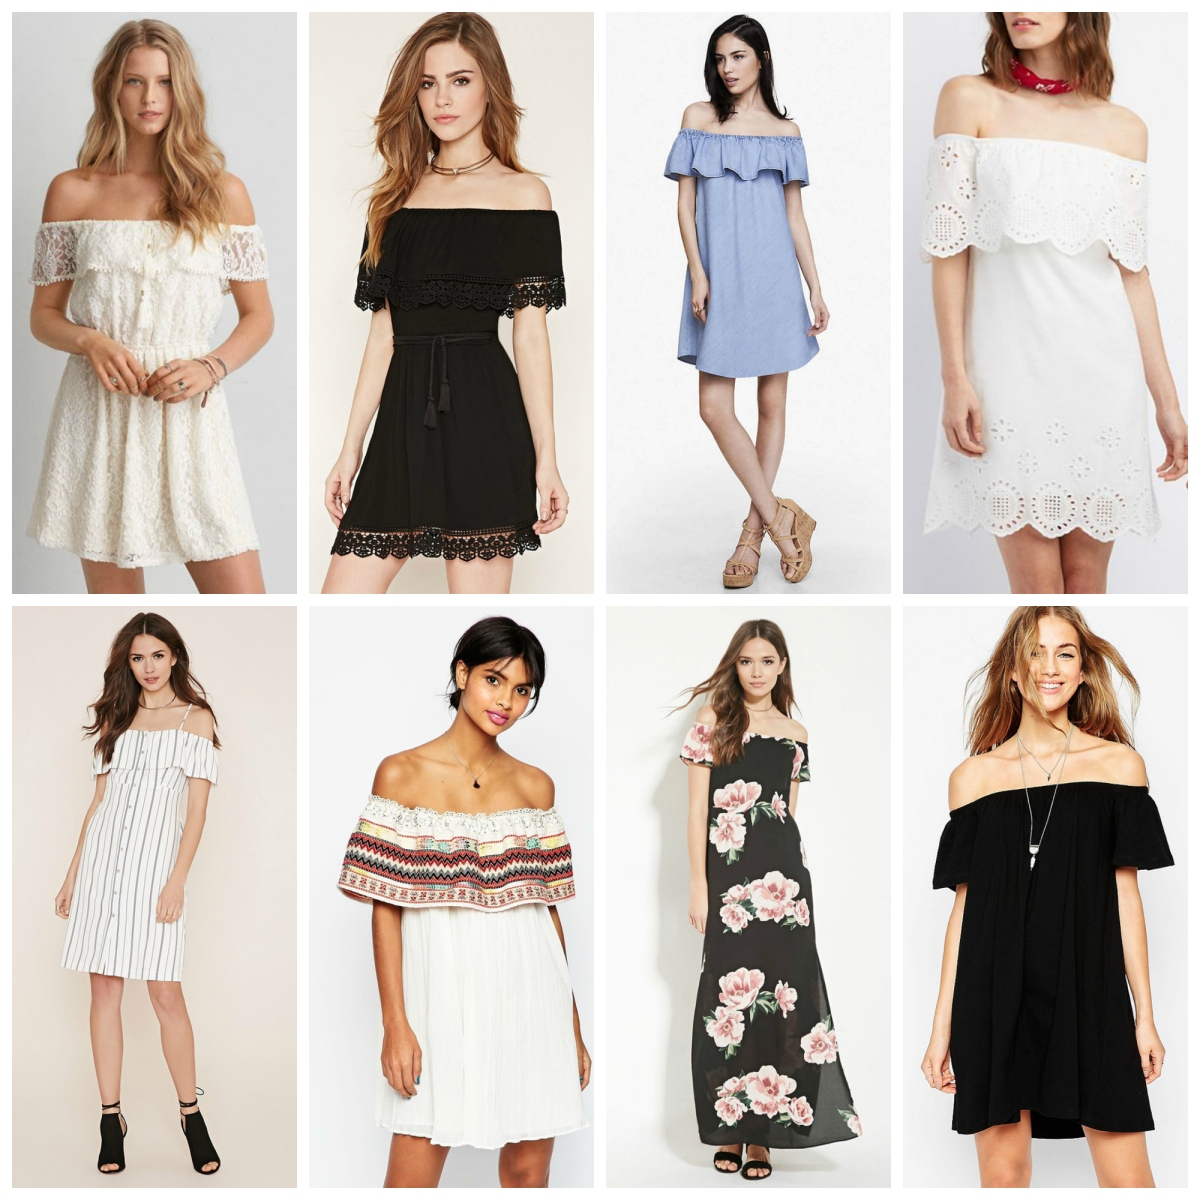 Favorites Friday: Off-the-shoulder dresses |www.pearlsandsportsbras.com|